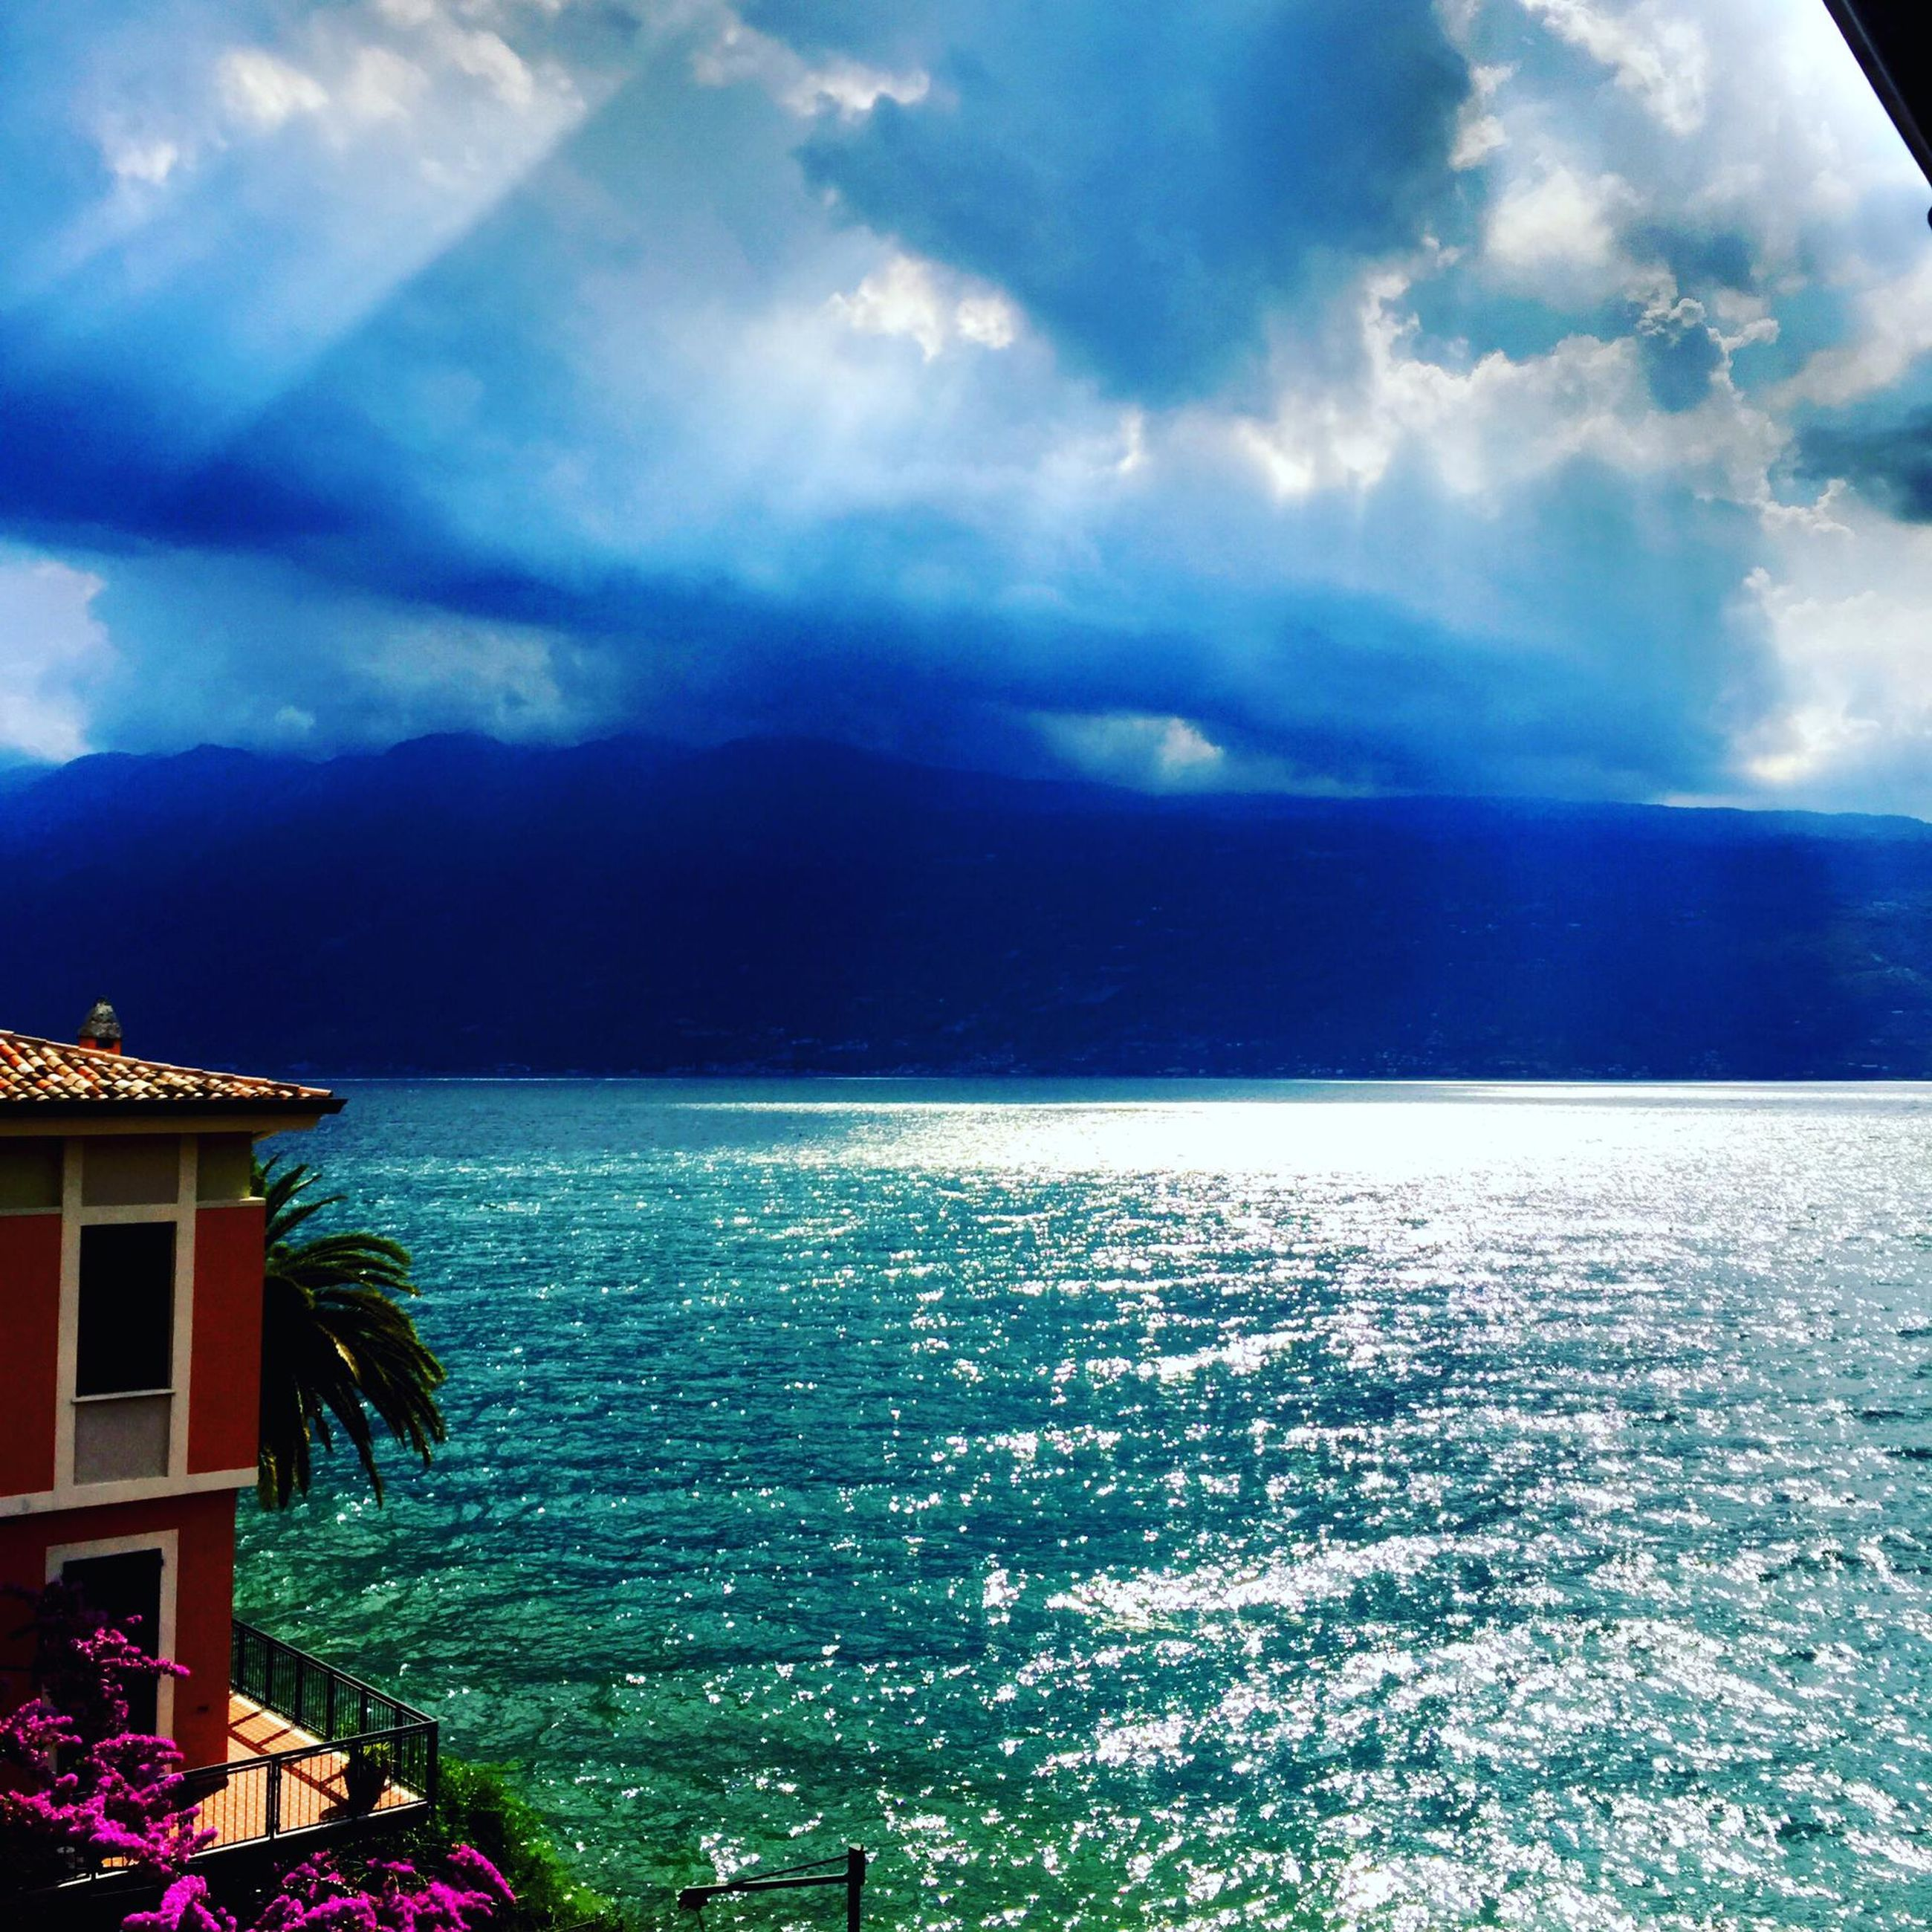 cloud - sky, sky, water, sea, beauty in nature, scenics - nature, architecture, nature, horizon over water, built structure, horizon, building exterior, no people, day, blue, tranquil scene, tranquility, outdoors, land, turquoise colored